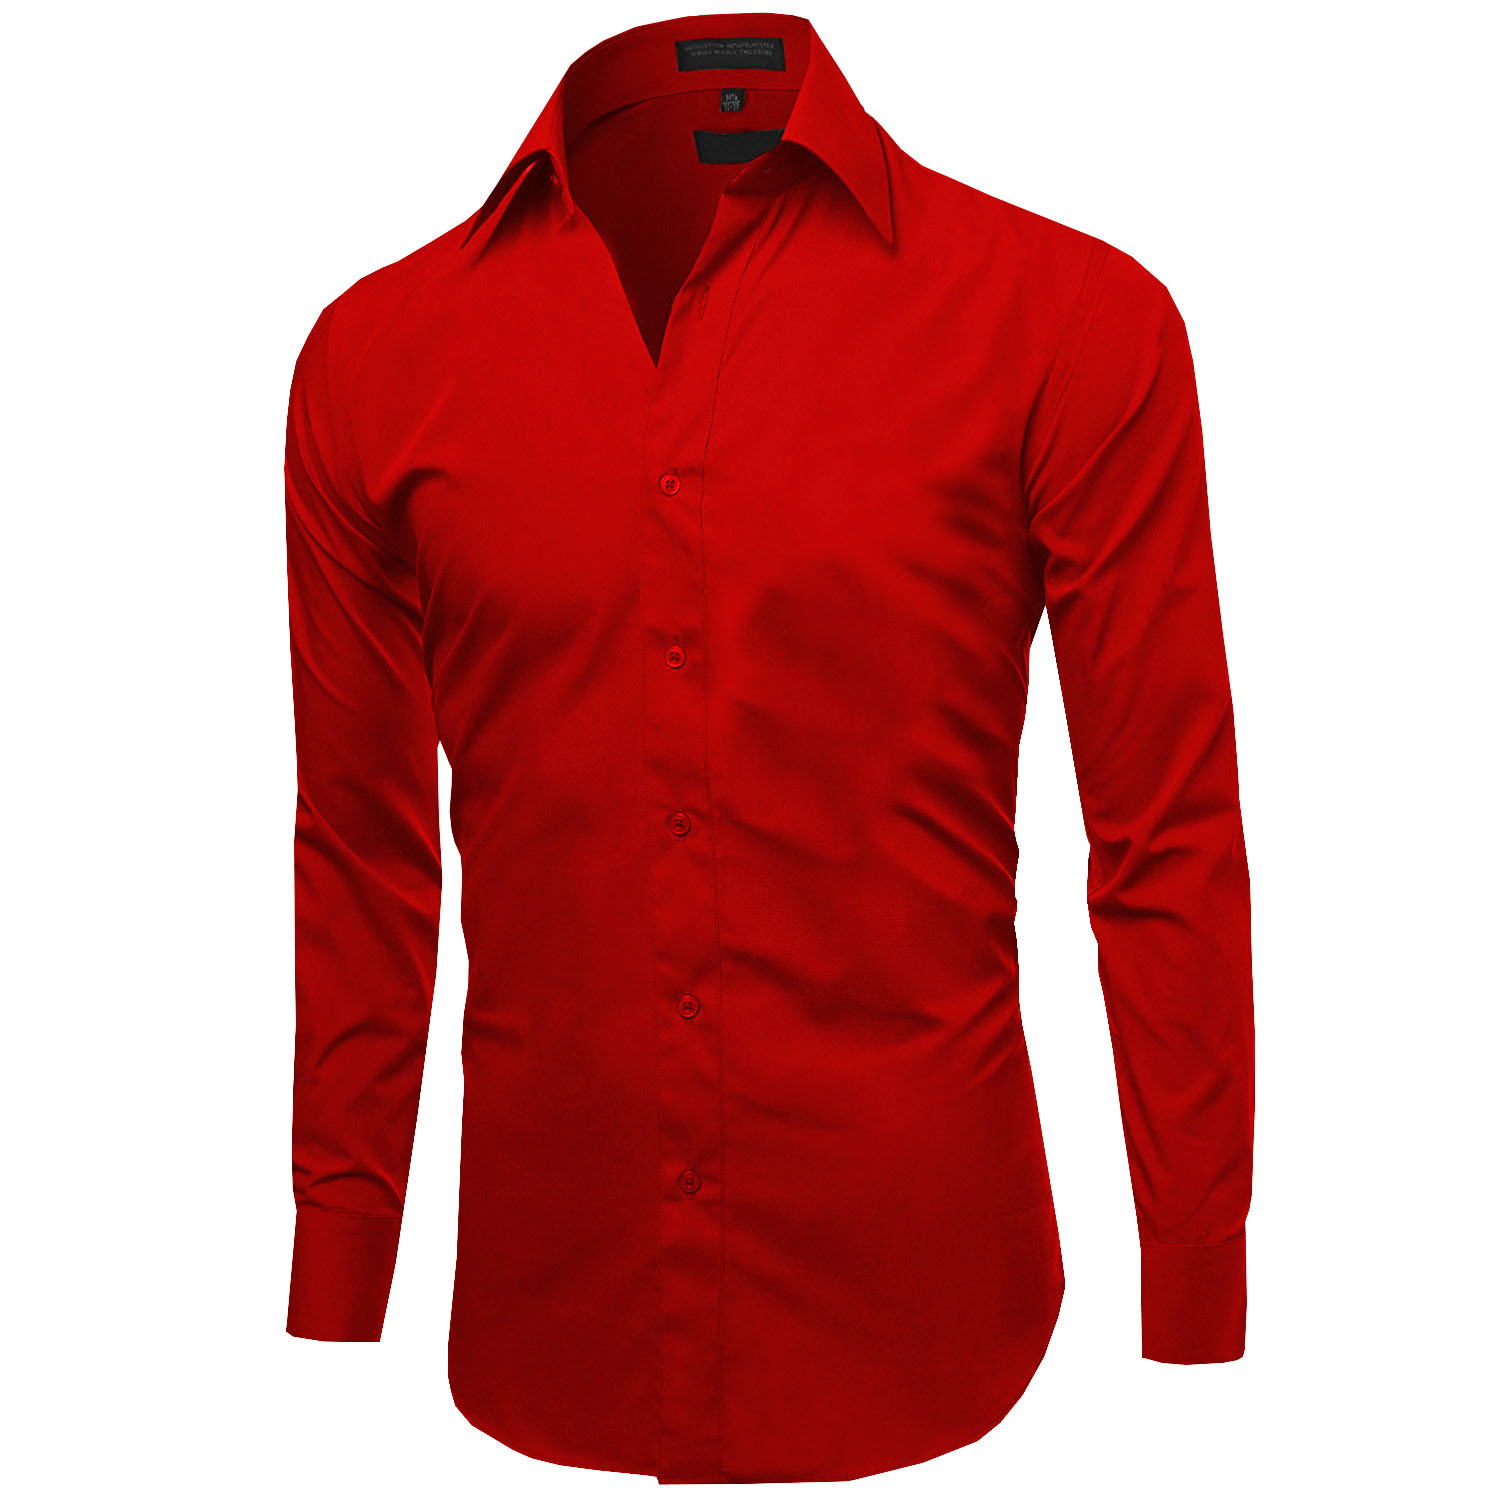 Omega-Italy-Men-039-s-Premium-Slim-Fit-Button-Up-Long-Sleeve-Solid-Color-Dress-Shirt thumbnail 103